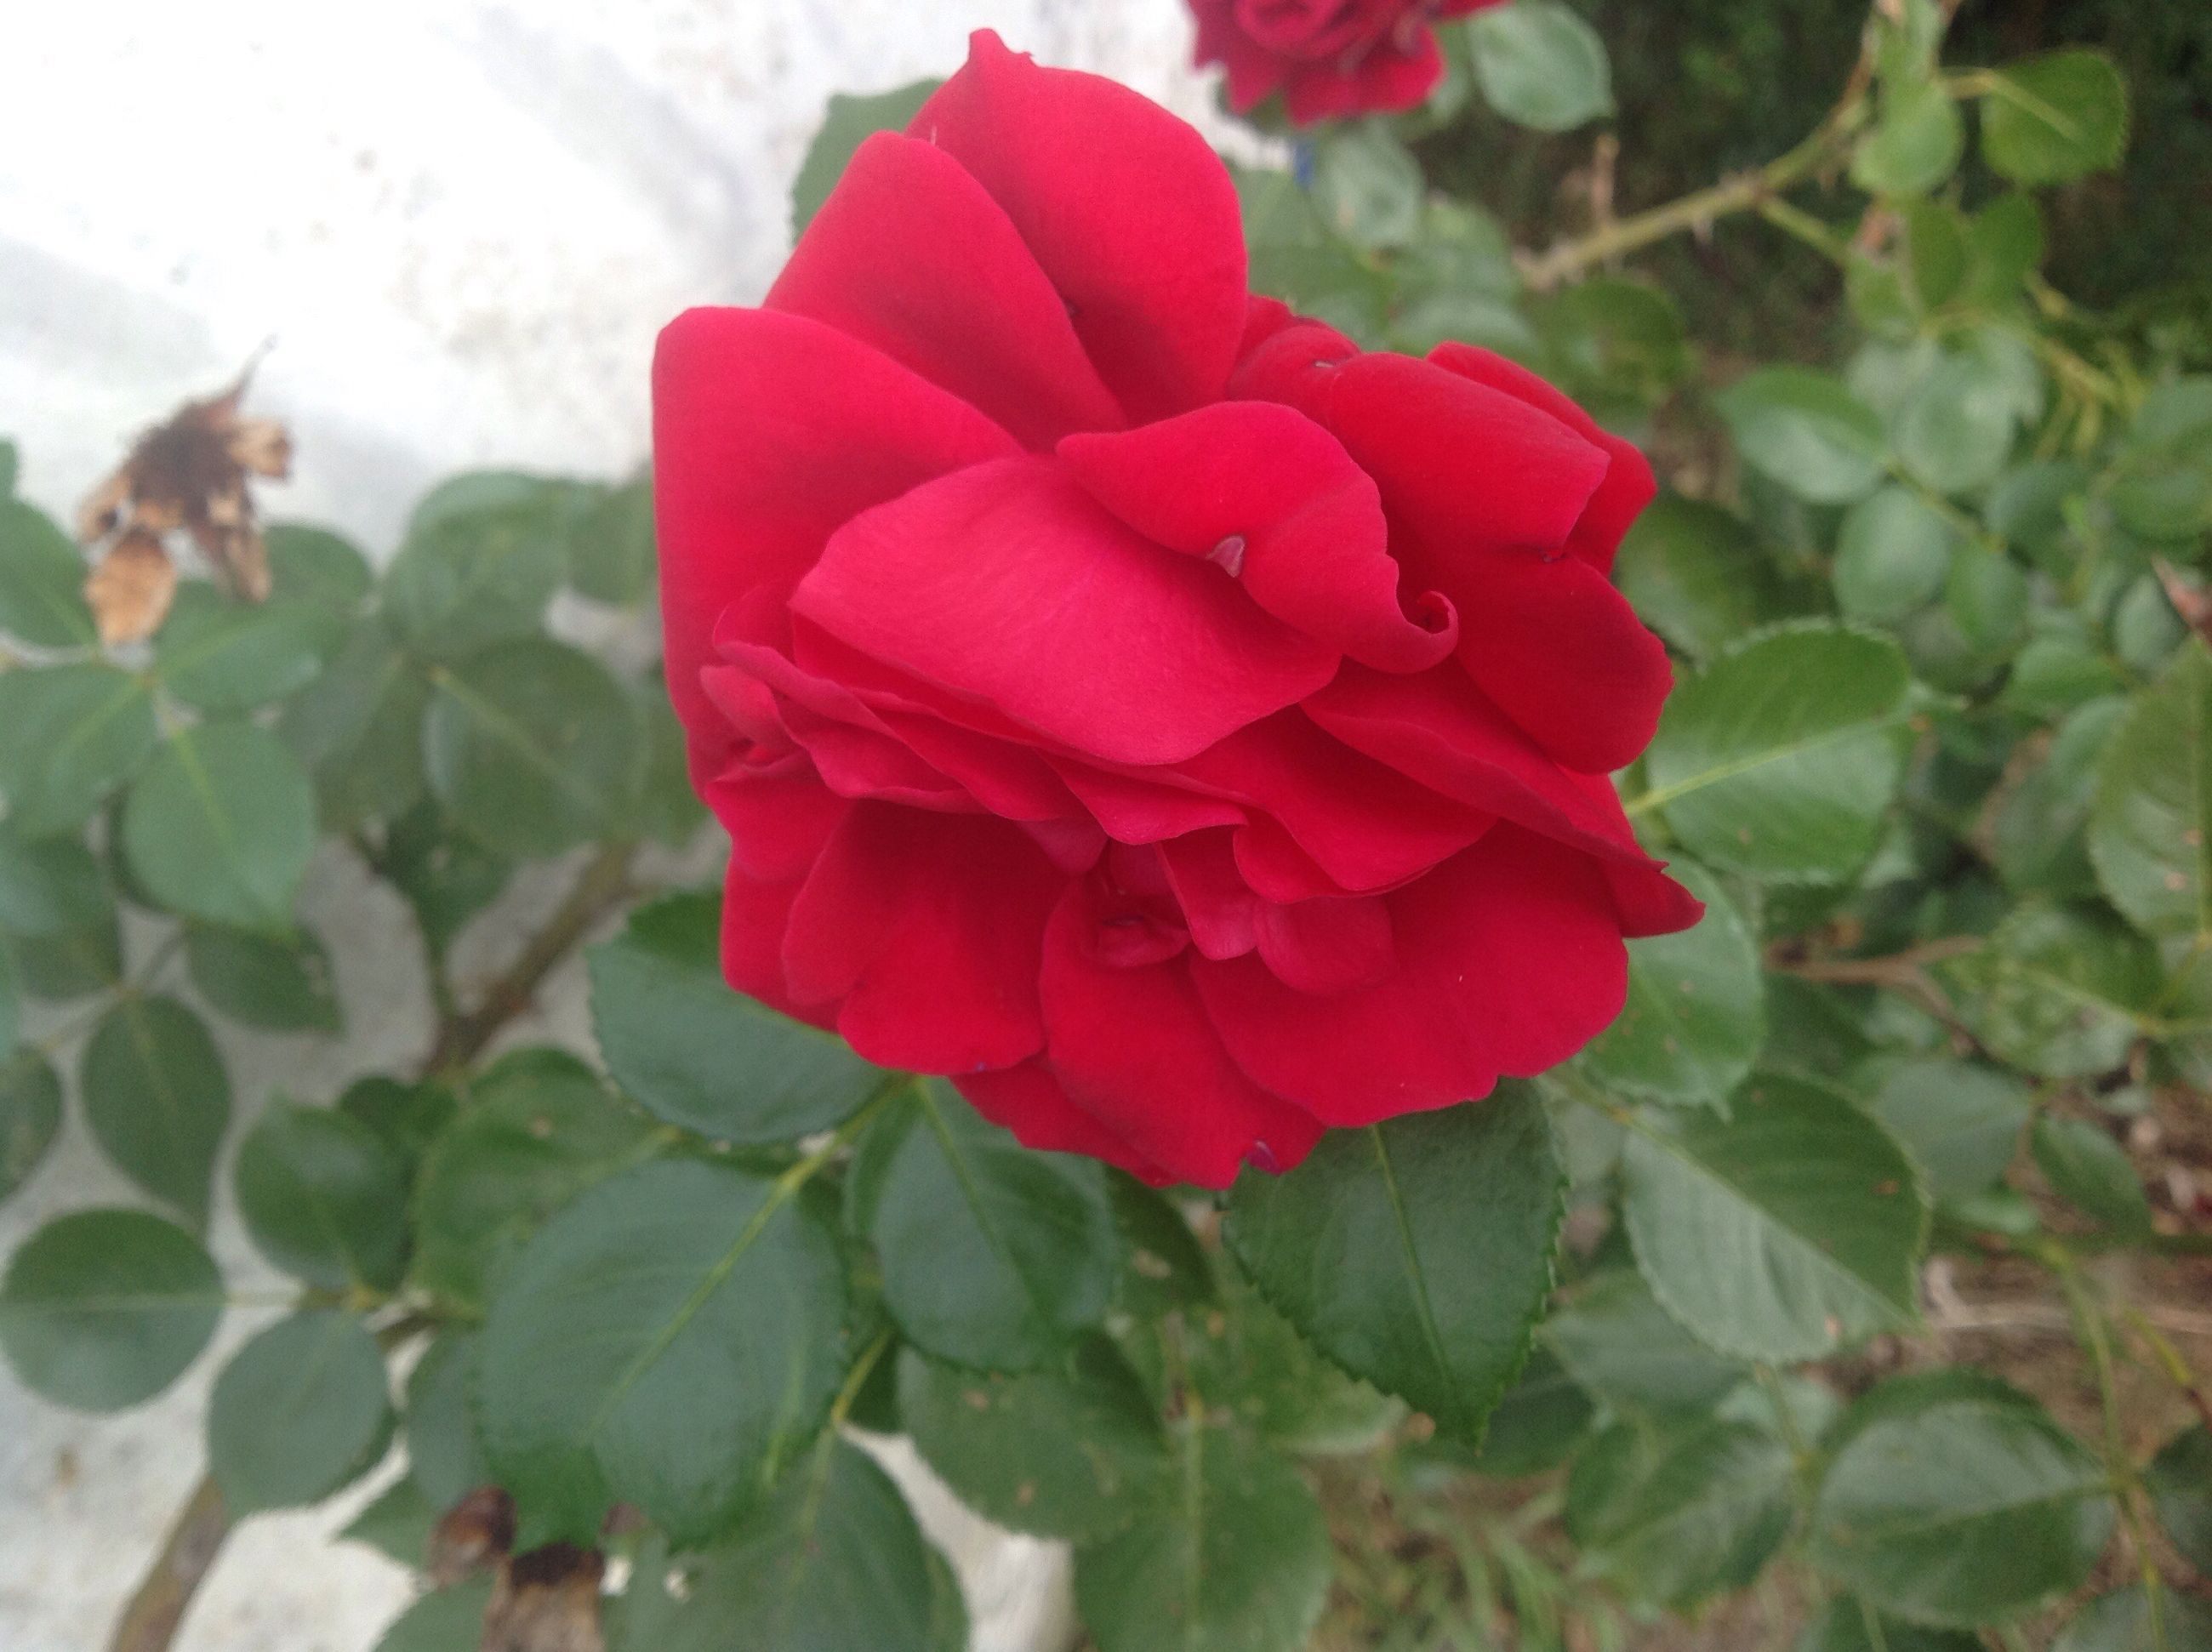 flower, freshness, fragility, petal, flower head, close-up, red, beauty in nature, growth, nature, leaf, season, rose - flower, vibrant color, springtime, plant, in bloom, single flower, selective focus, day, softness, outdoors, blossom, botany, focus on foreground, blooming, soft focus, pink color